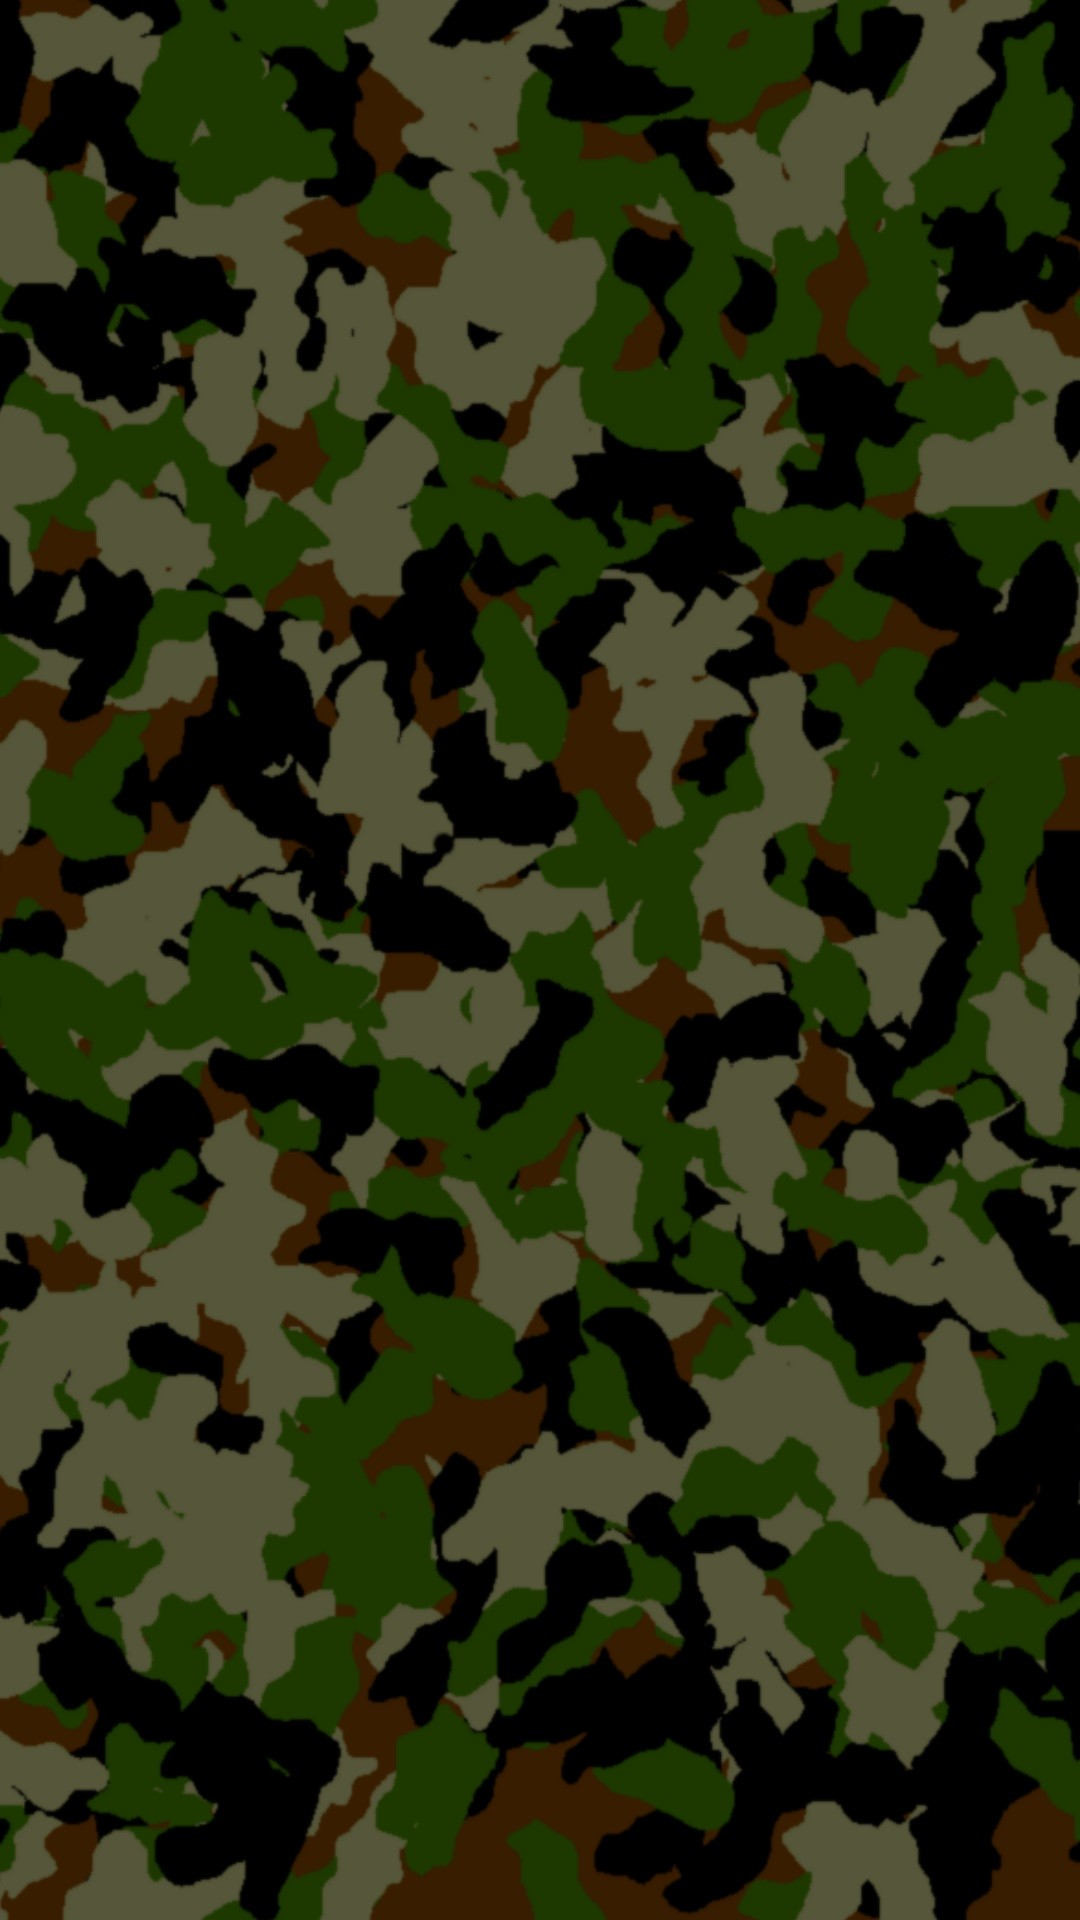 camo desktop wallpaper full screen - photo #4